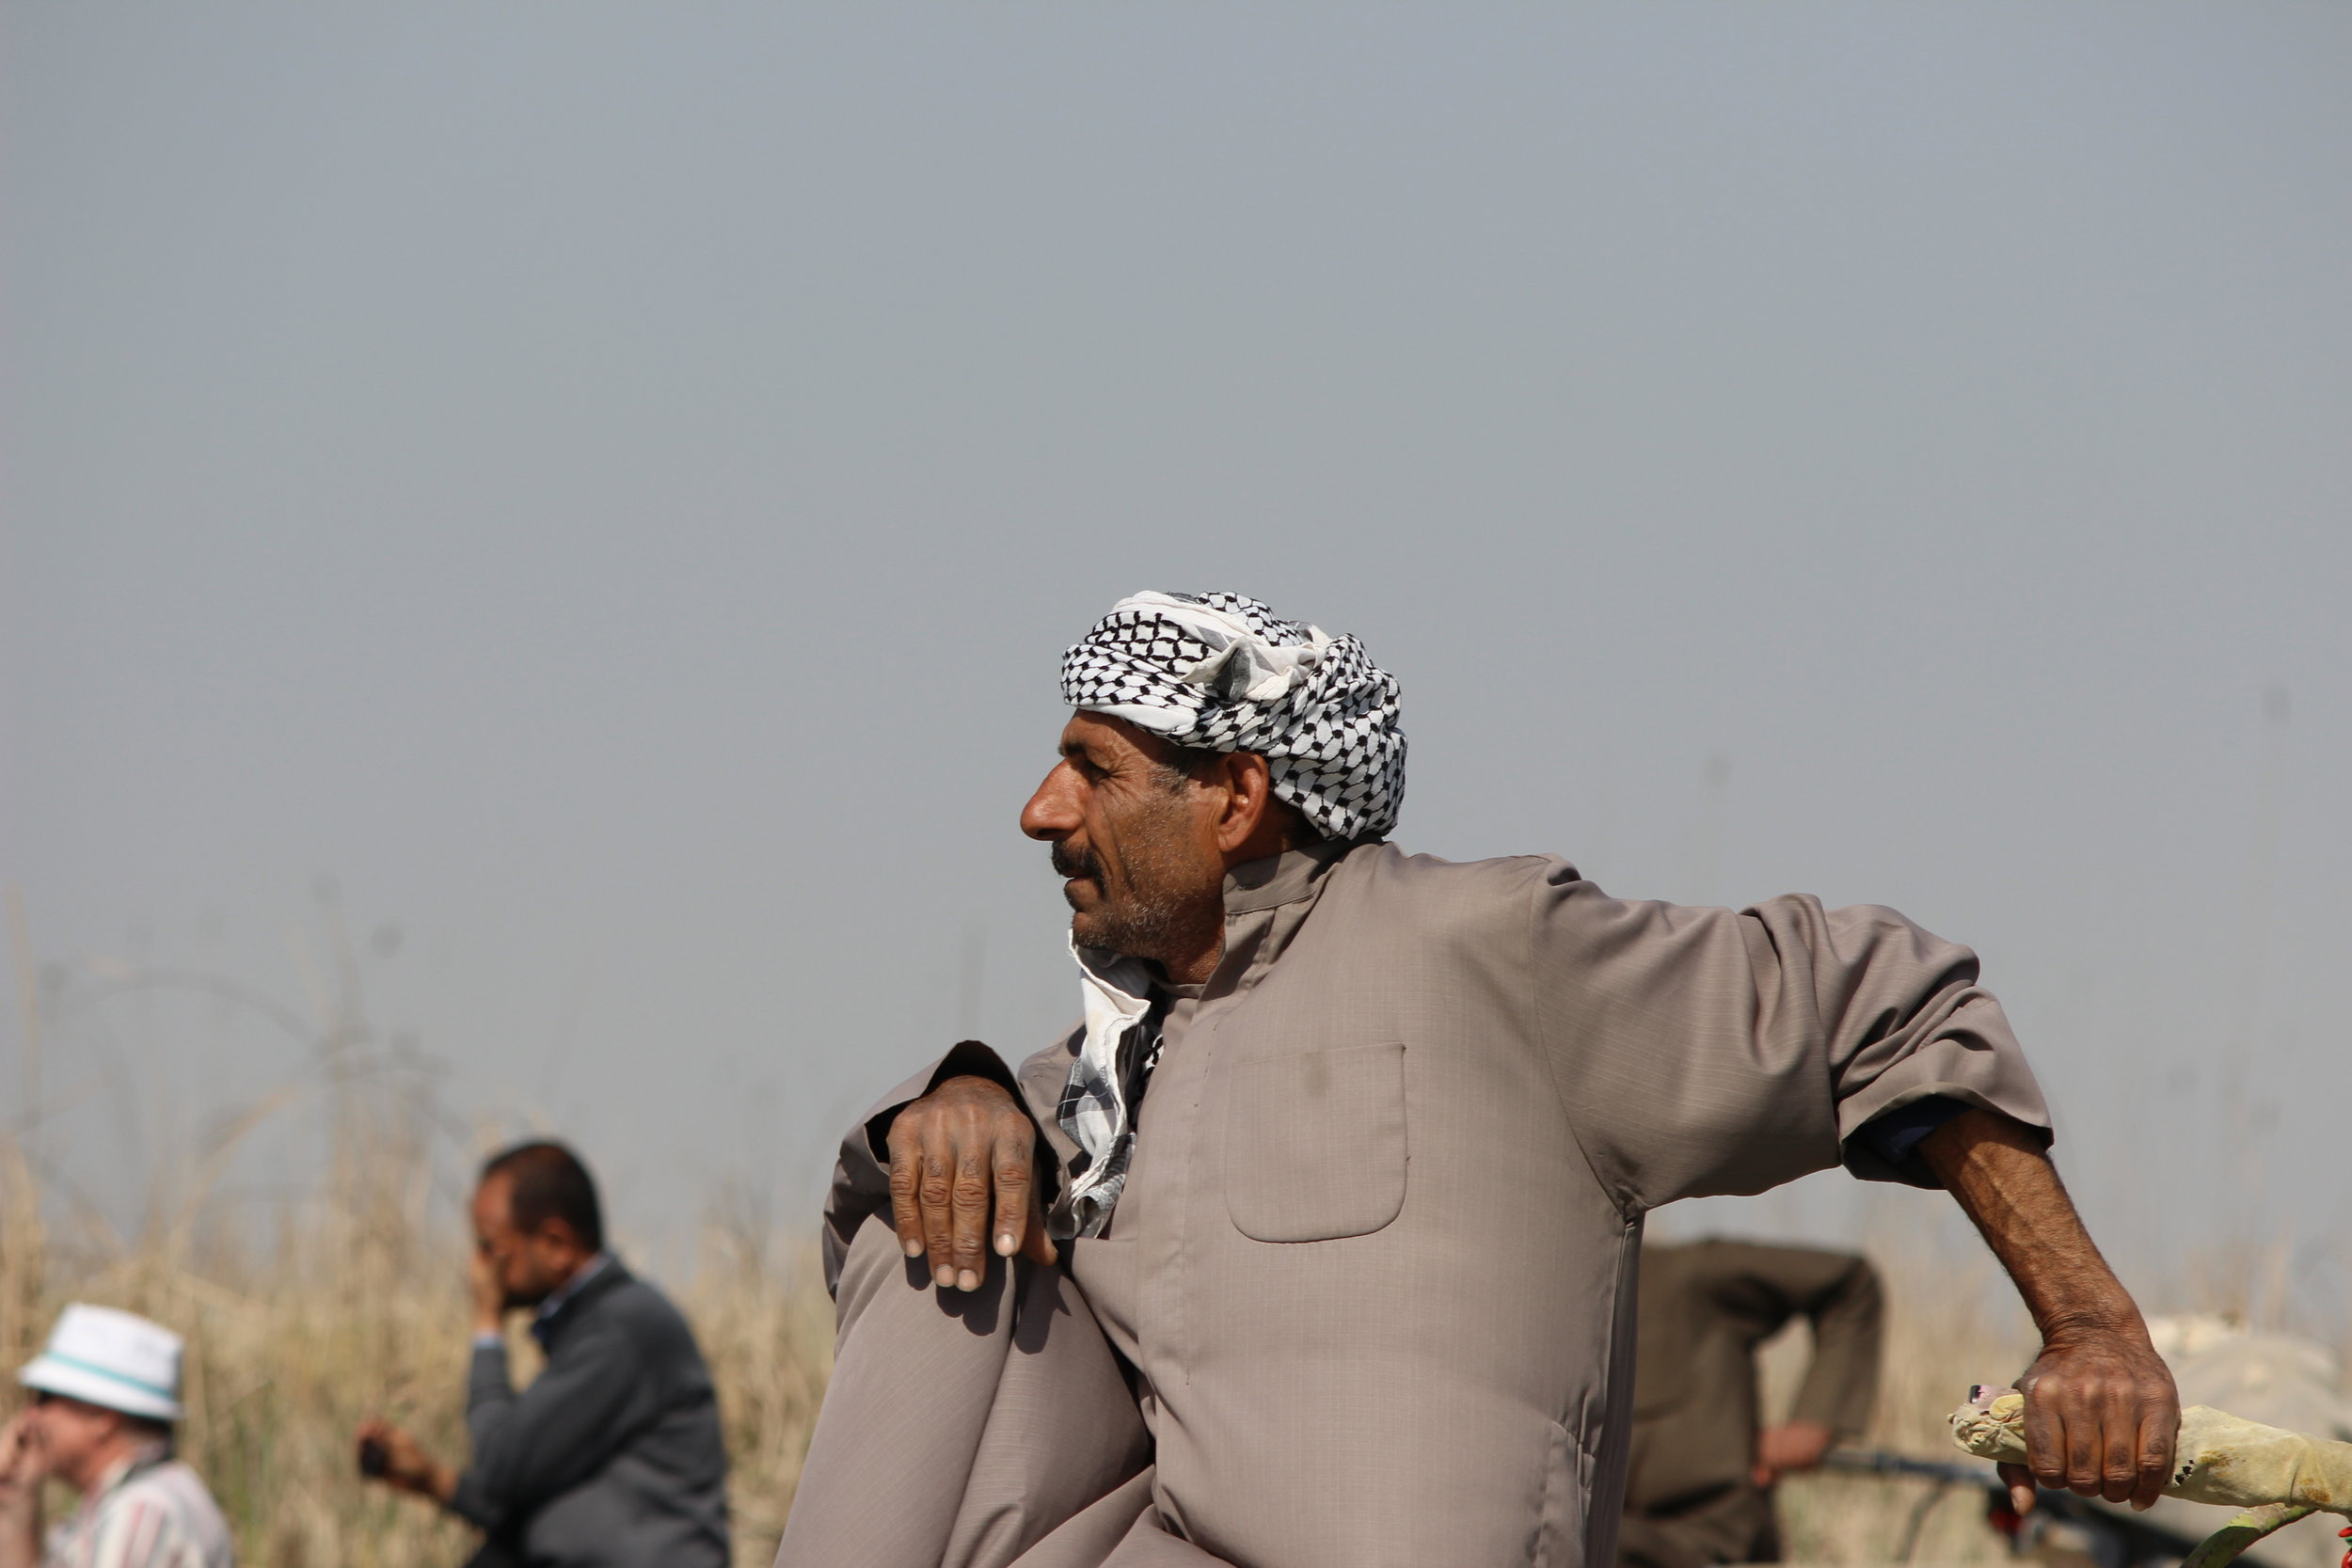 Iraq people (Ihab March 2013) 13.jpg